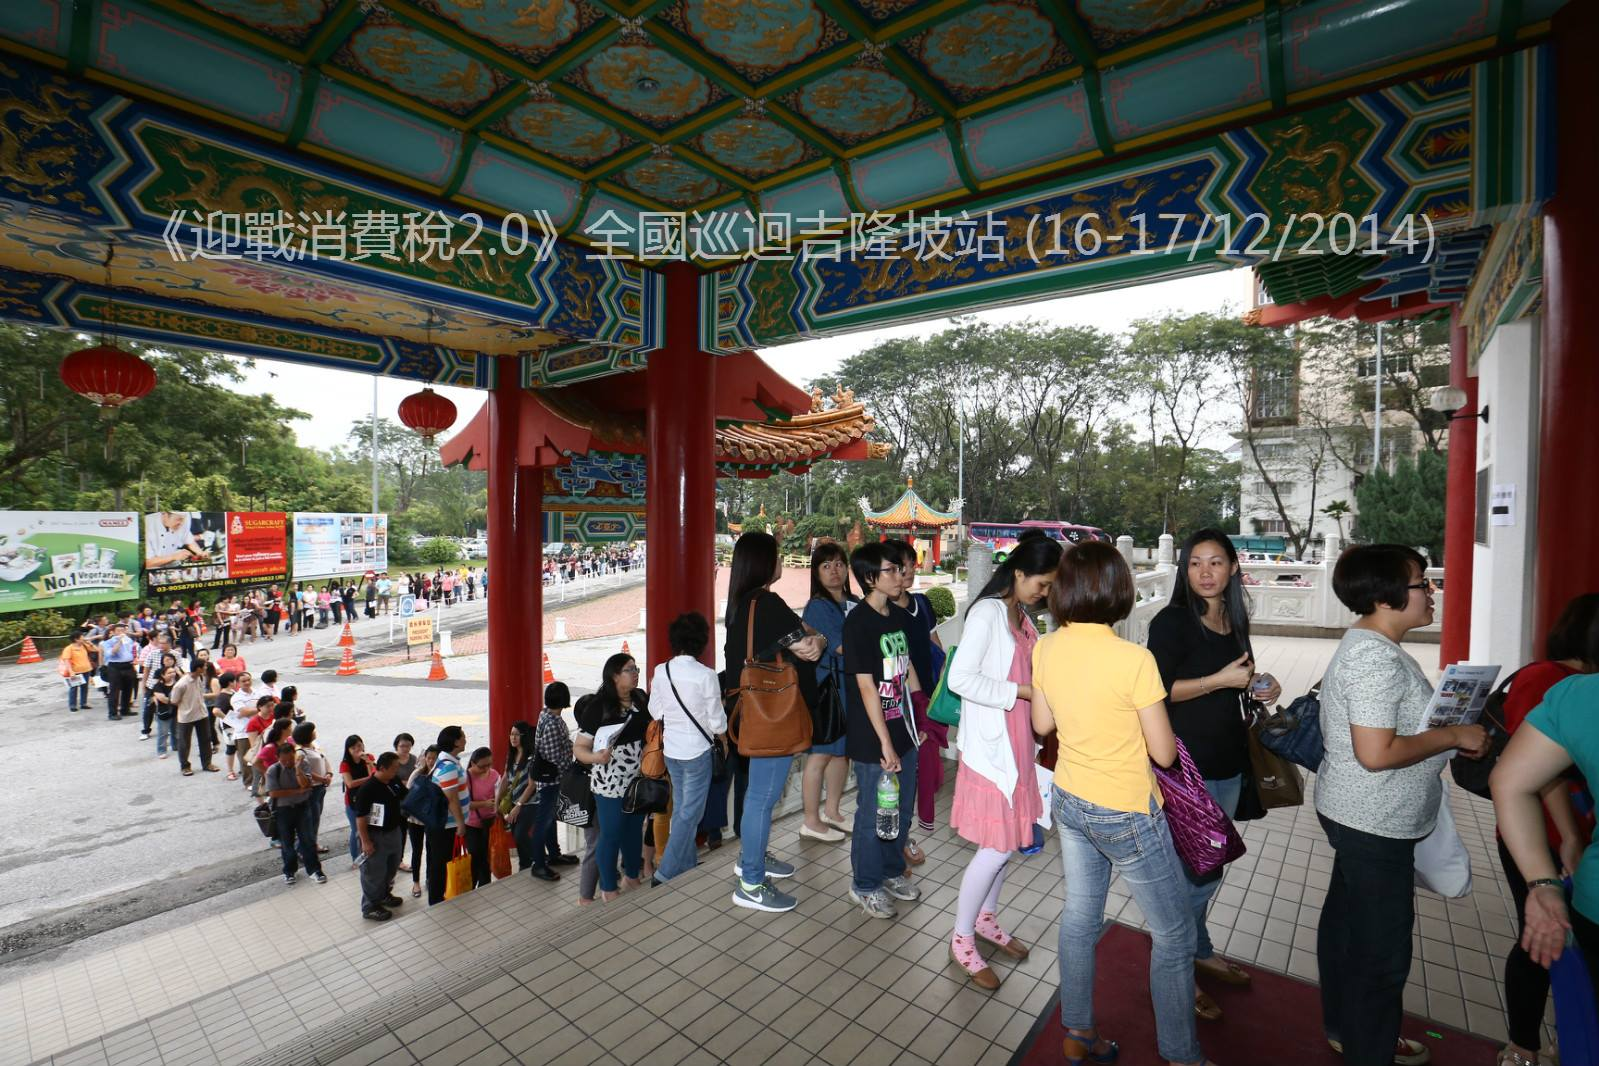 Thean Hou Temple at KL - 16 & 17 December